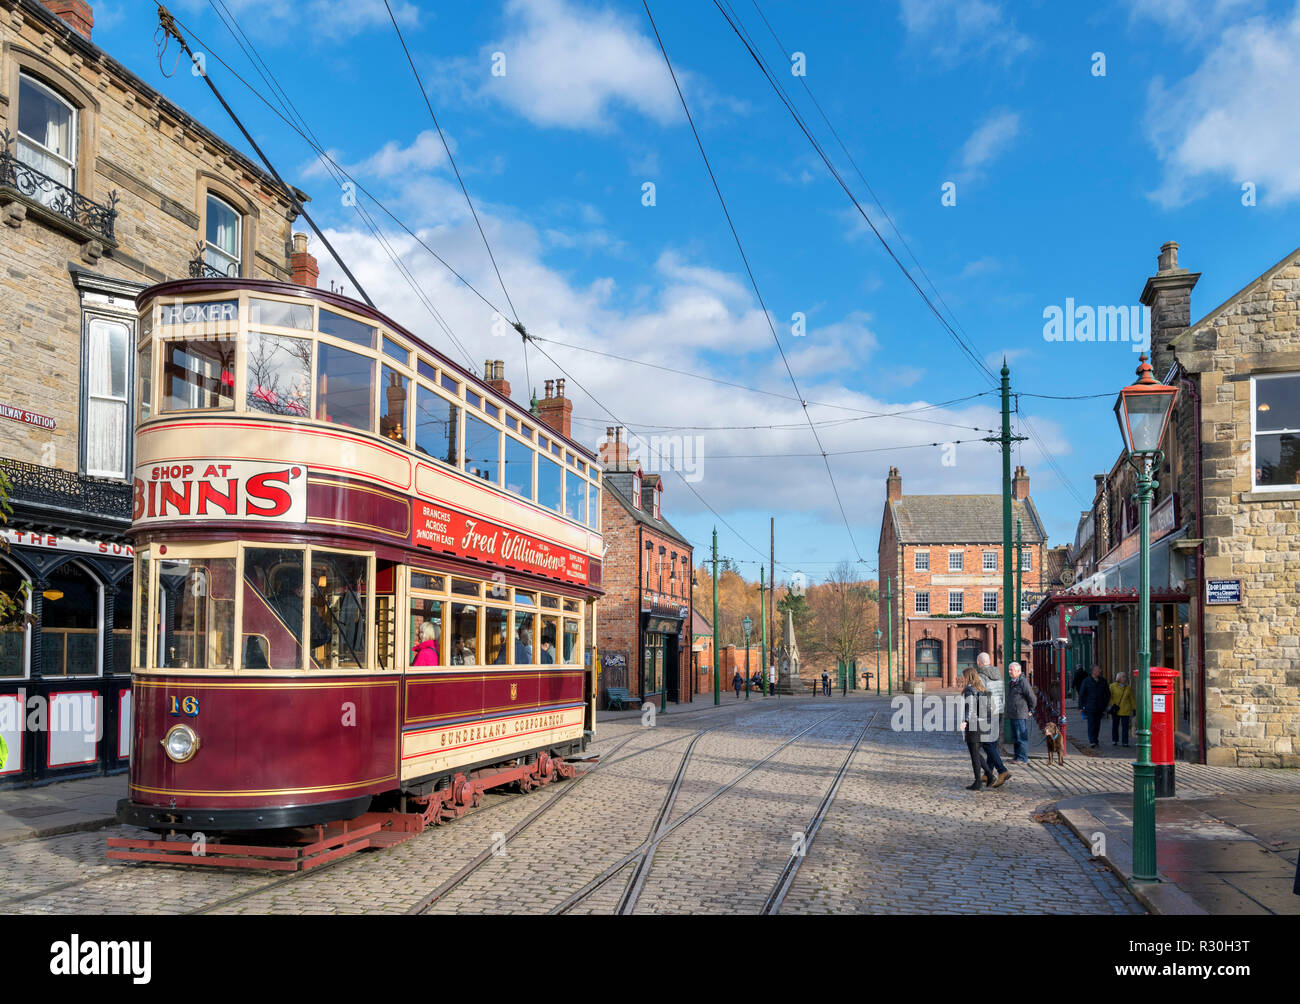 Old tram on the High Street in the 1900s Town, Beamish Open Air Museum, Beamish, County Durham, England, UK - Stock Image